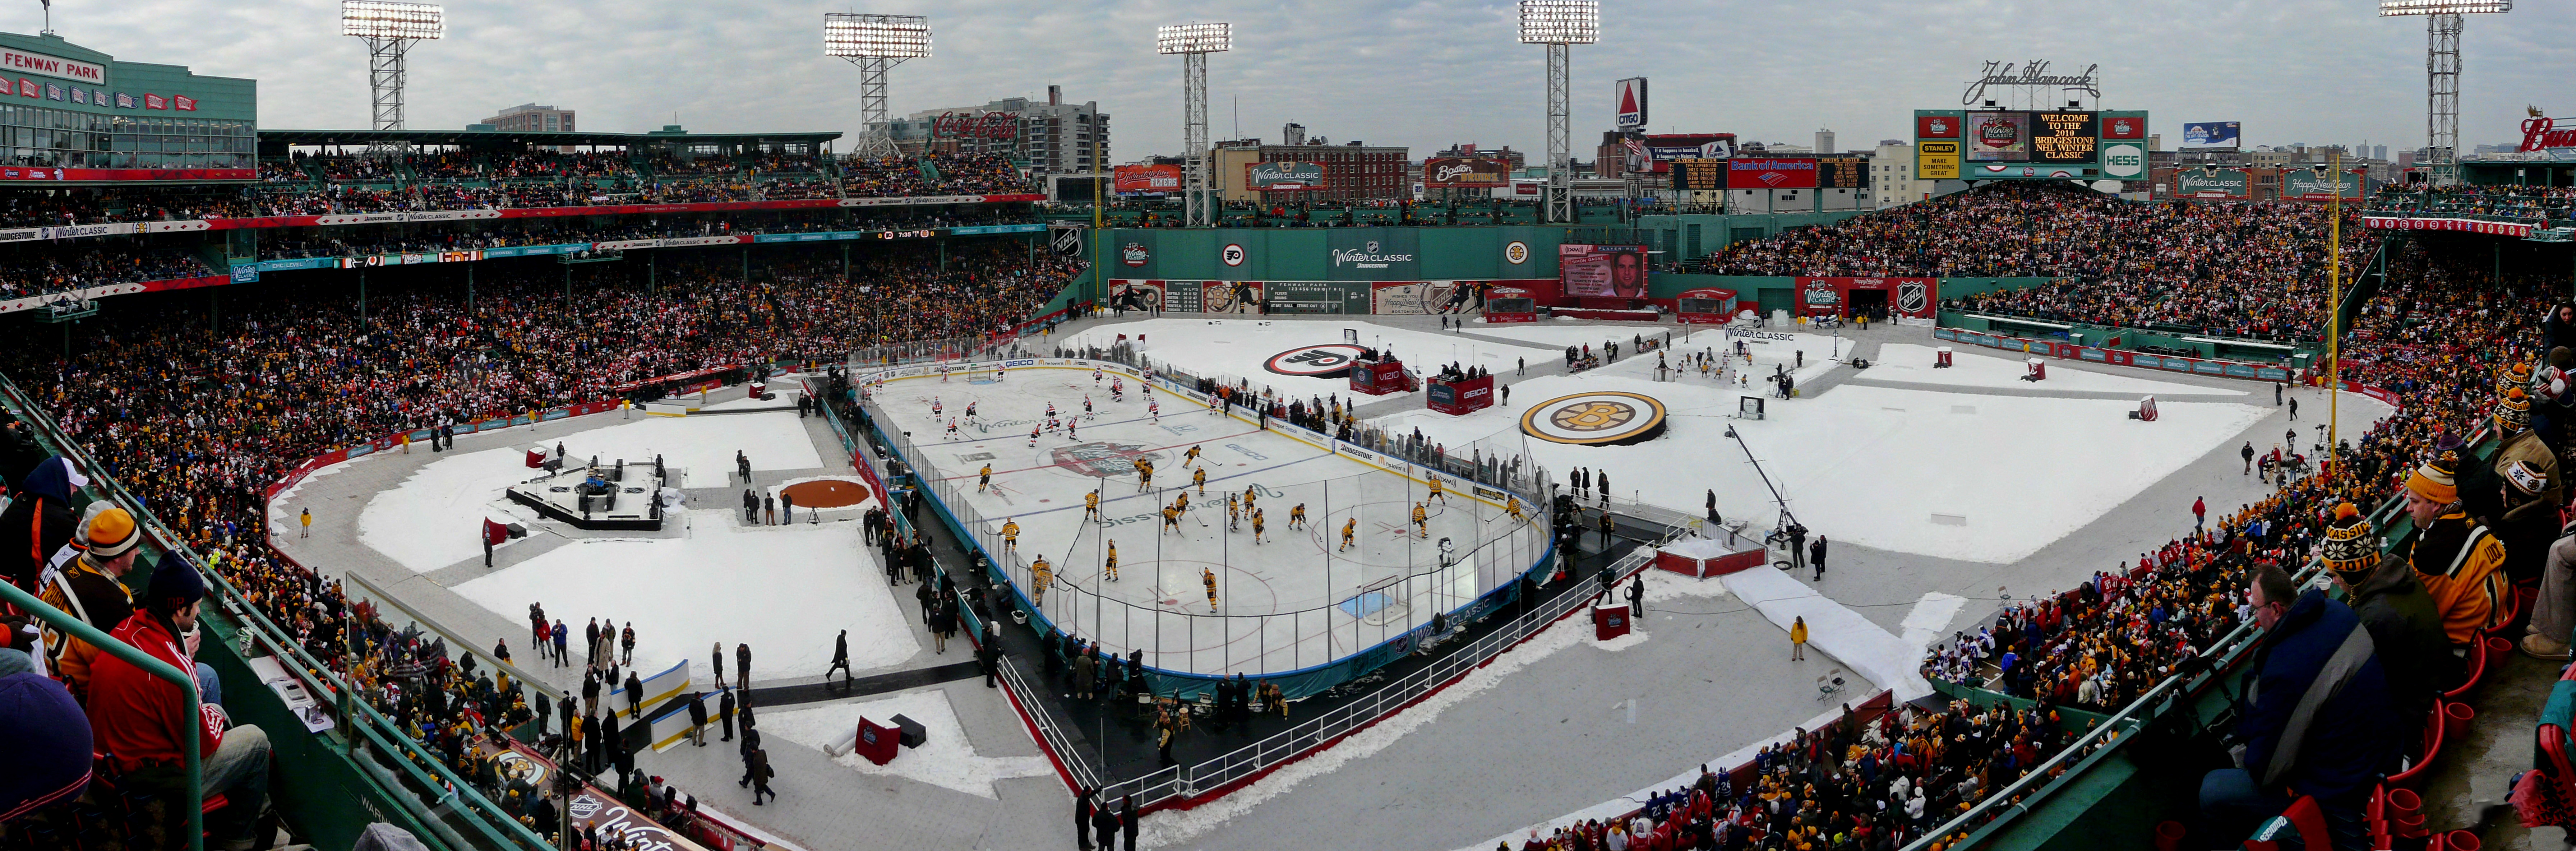 Nhl Winter Classic Pictures and Photos Getty Images 2018 winter classic fenway park photos